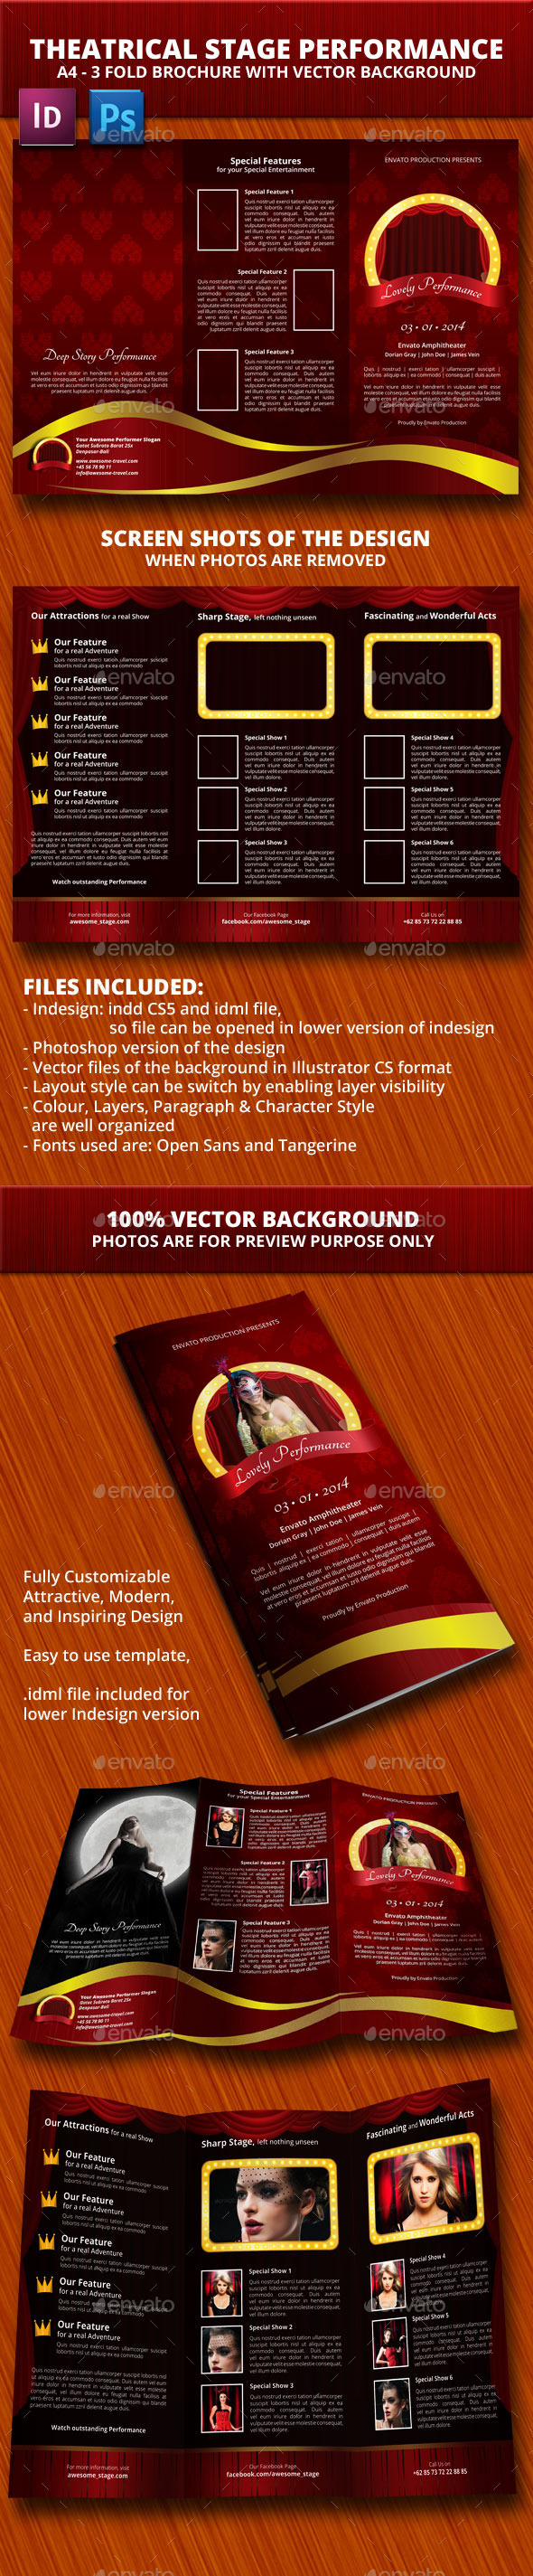 Theaterical Stage Performance Trifold Brochure - Informational Brochures